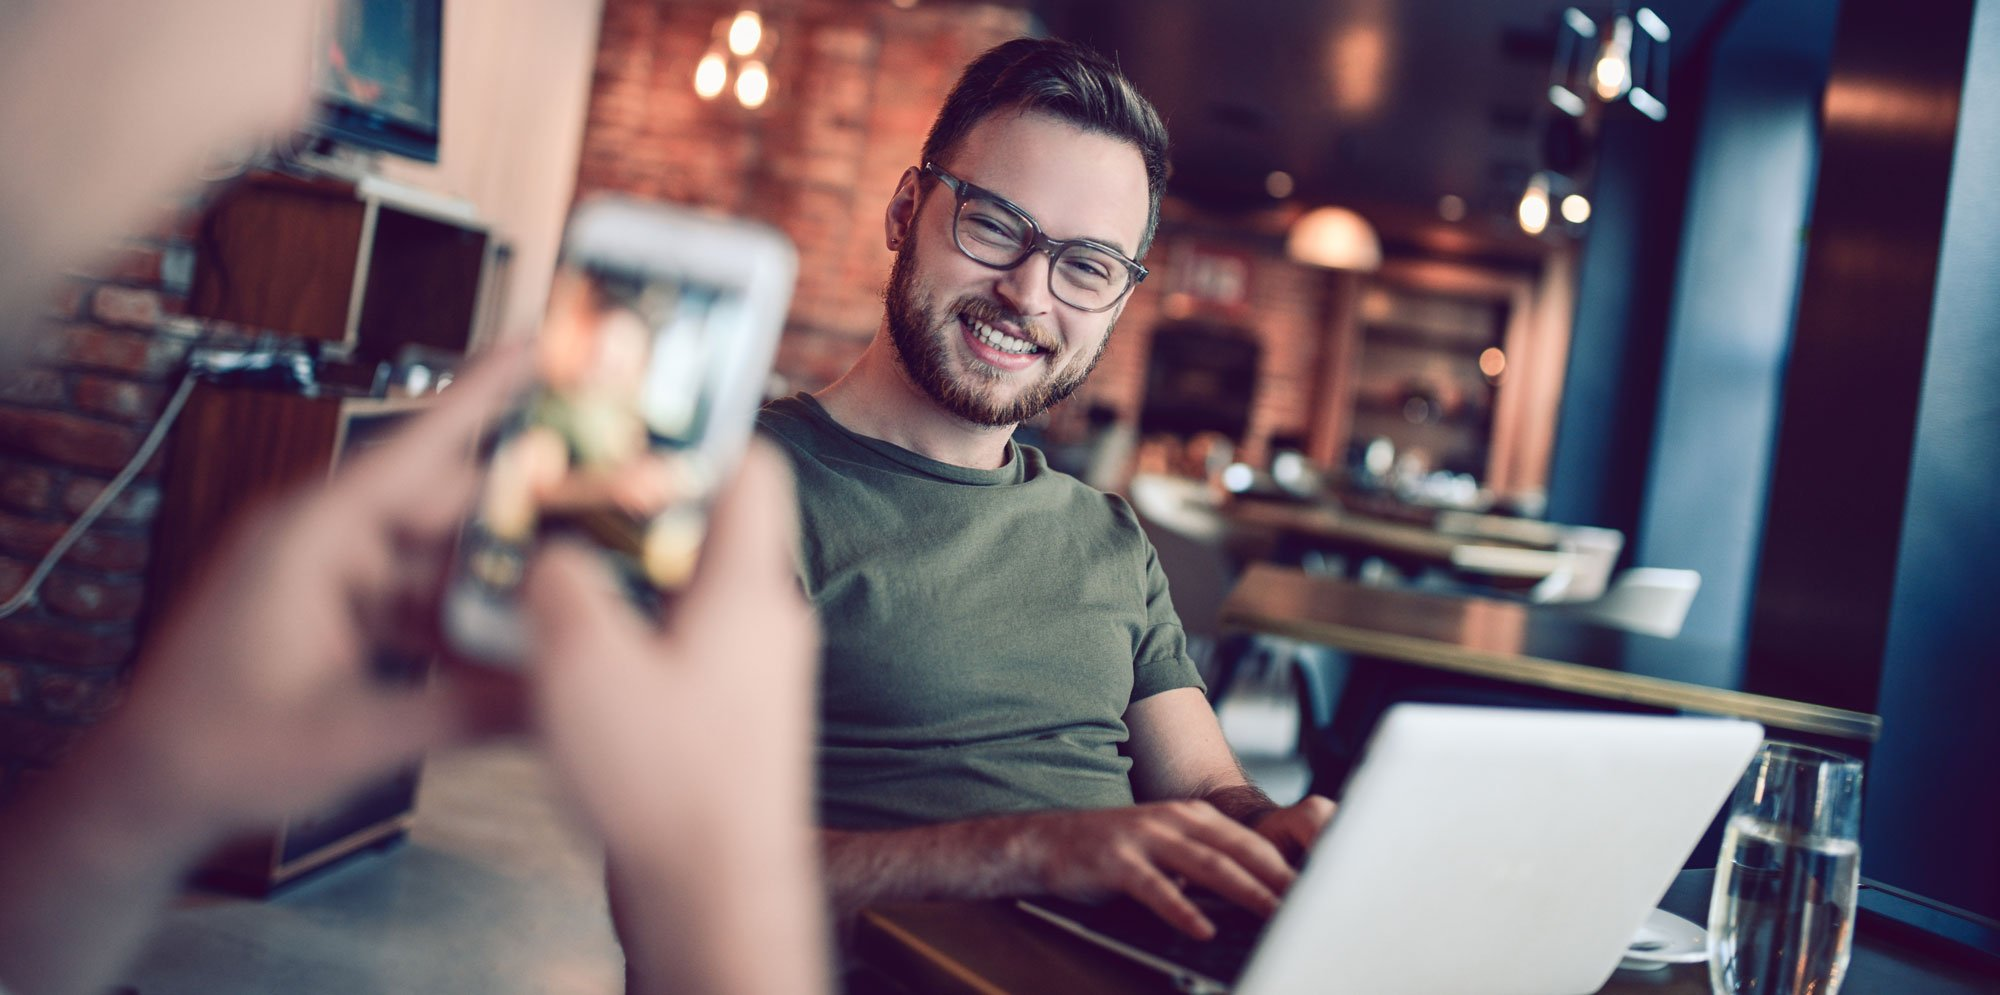 in a cafe, a man takes a picture on his phone of another man on his laptop